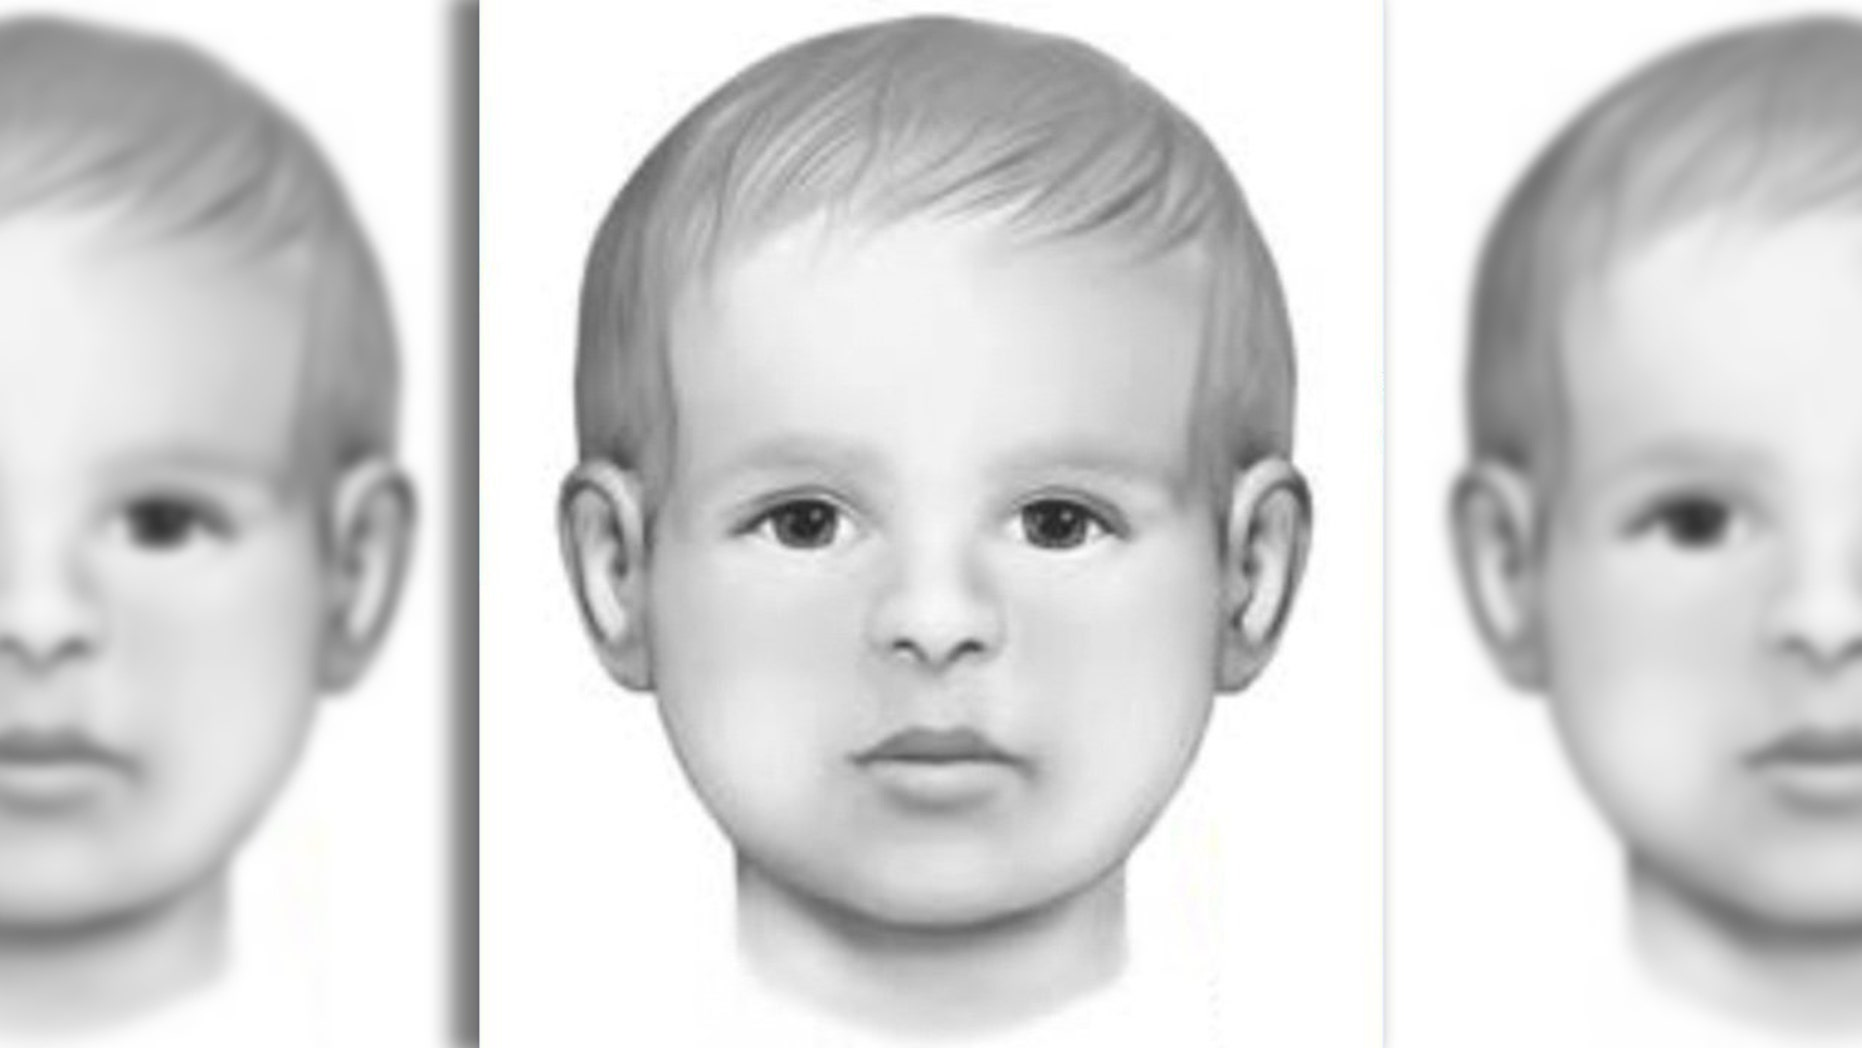 This image of Baby Doe was developed by a forensic artist.